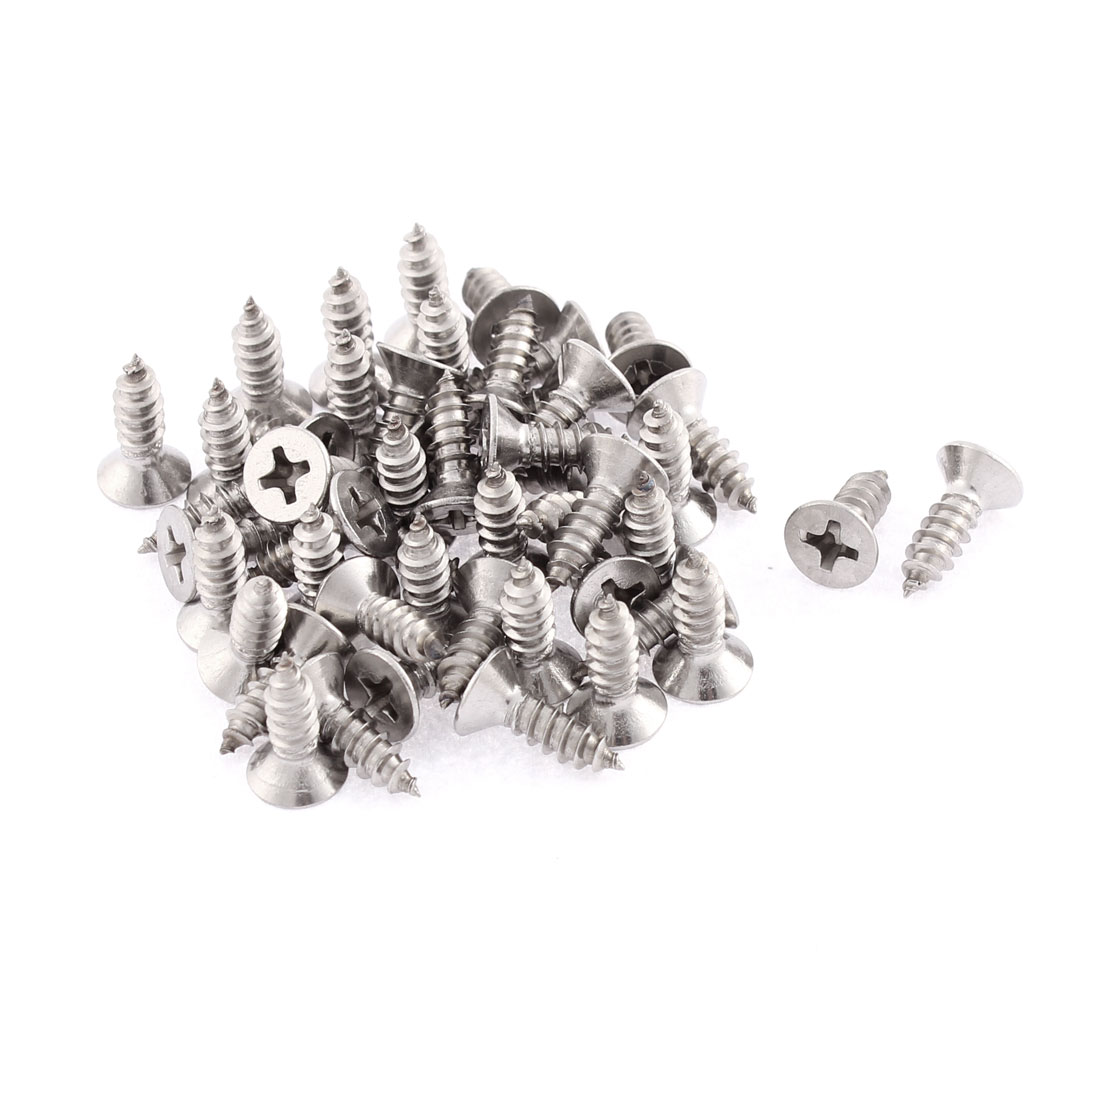 50 Pcs 4.2mmx13mm Stainless Steel Phillips Flat Head Sheet Self Tapping Screws